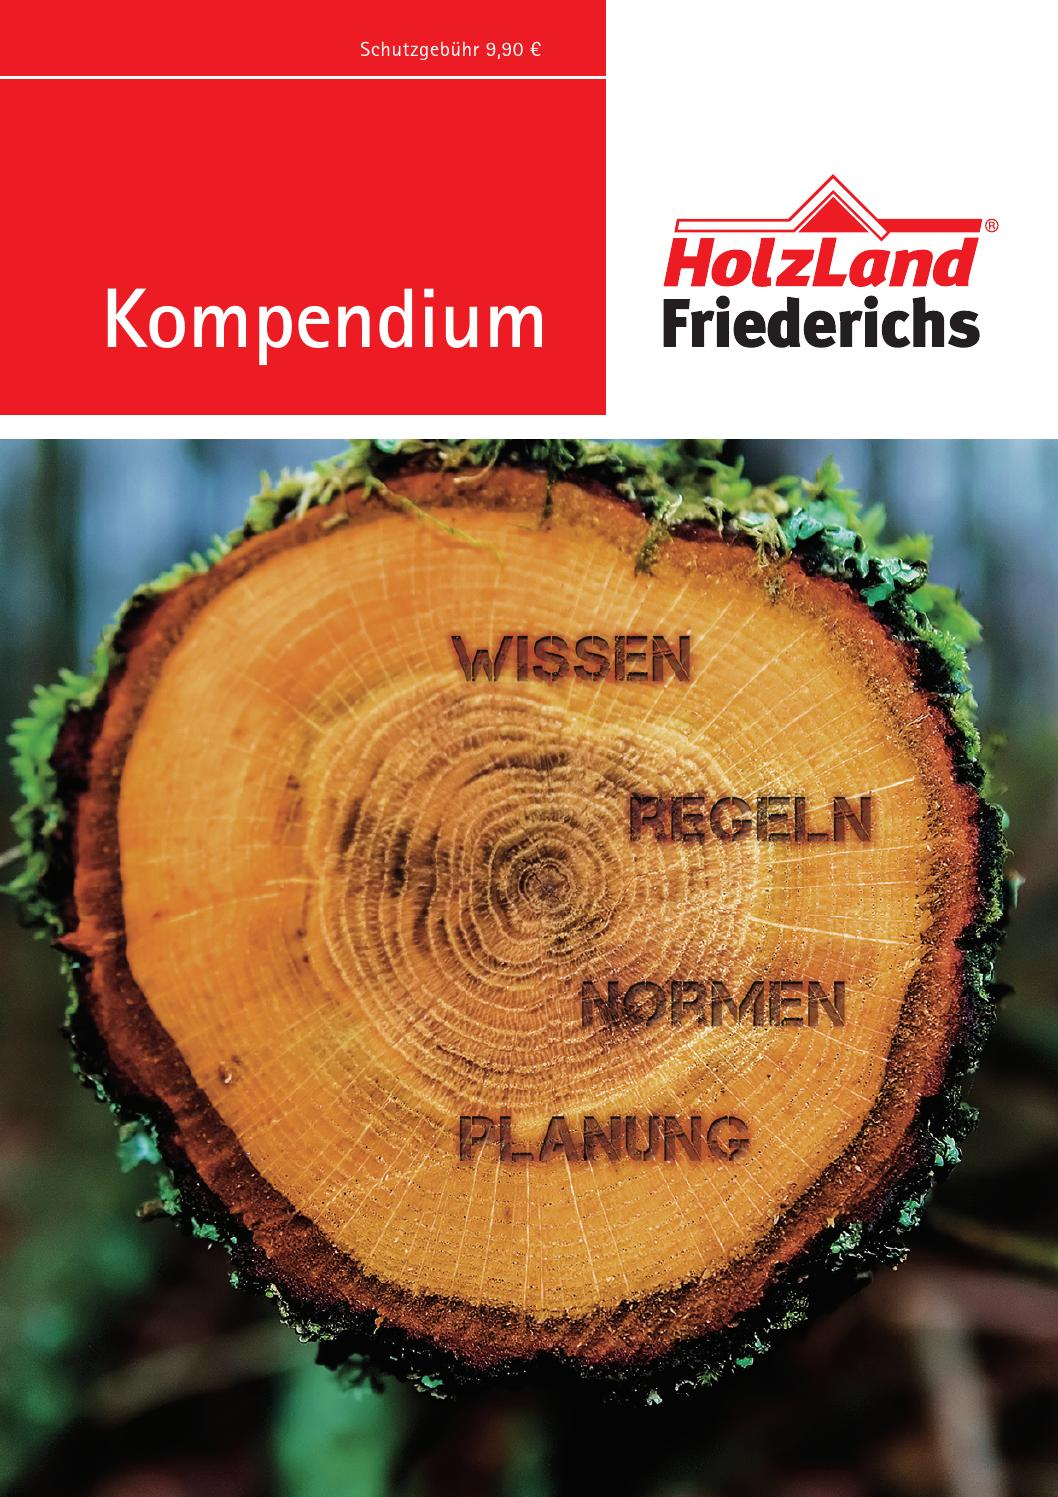 Kompendium Holzland Friederichs 2016 By Kaiser Design Issuu